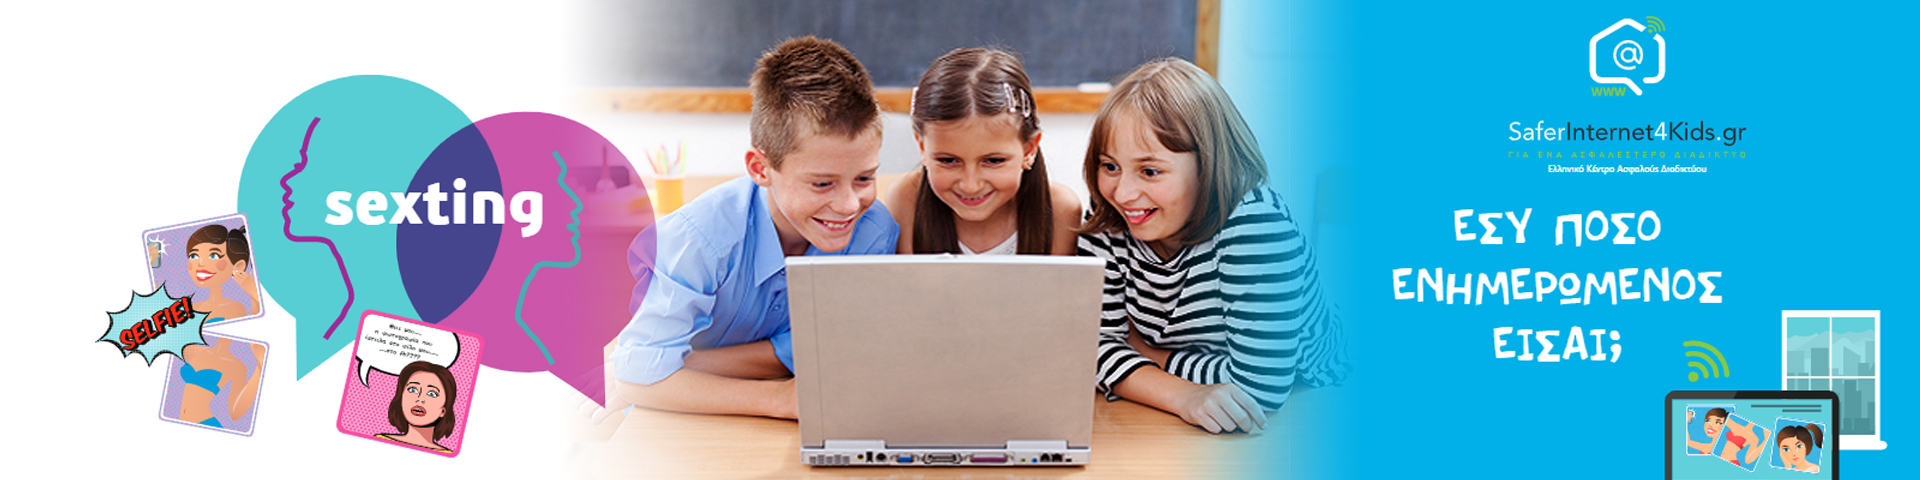 Image for Safer Internet for Kids Project